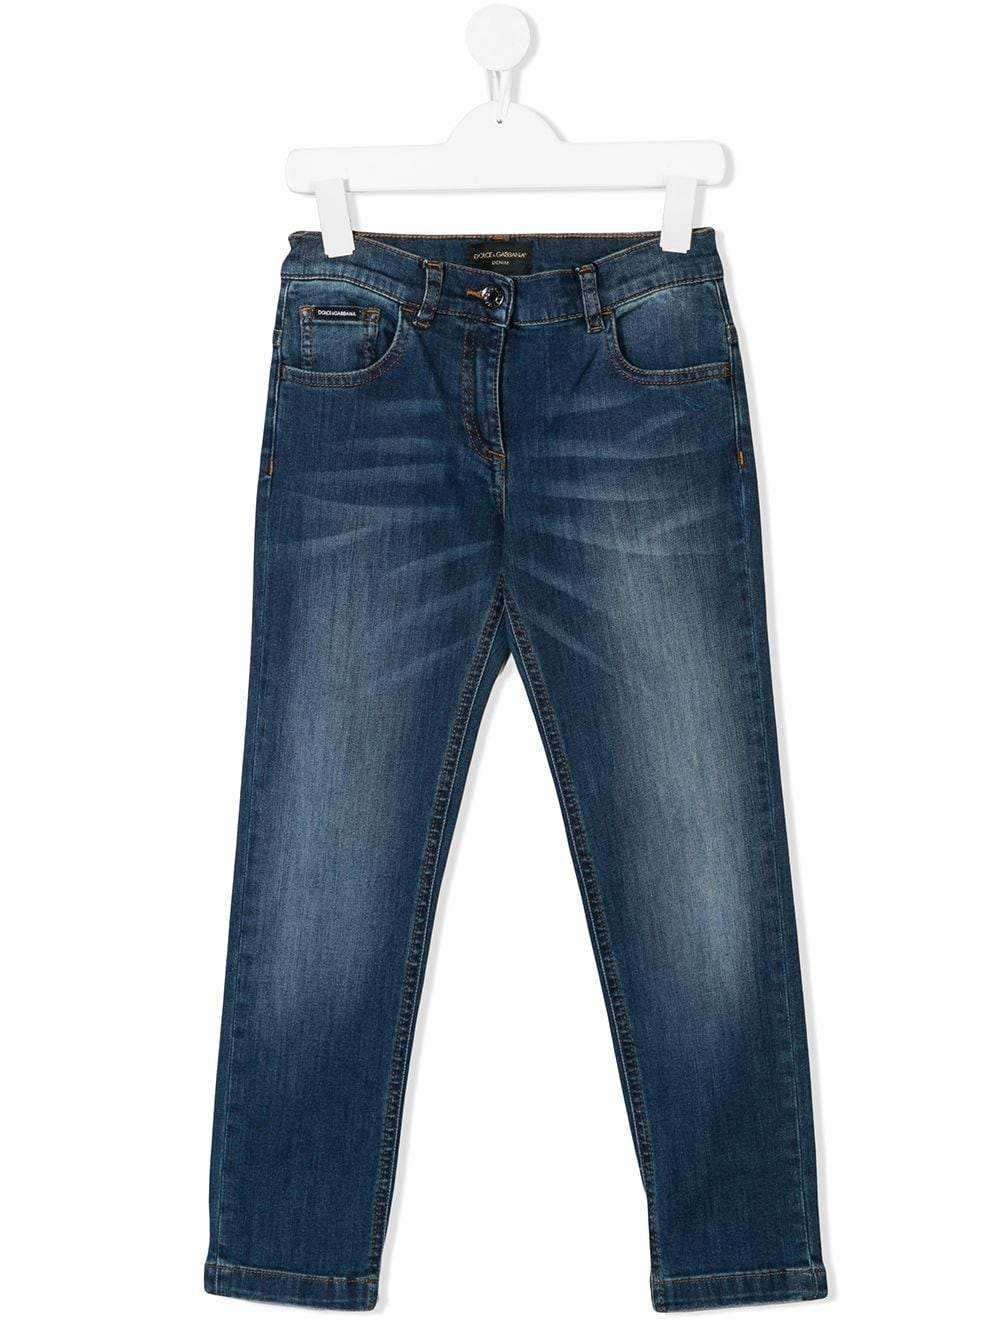 DOLCE & GABBANA KIDS Slim Fit Jeans - Maison De Fashion